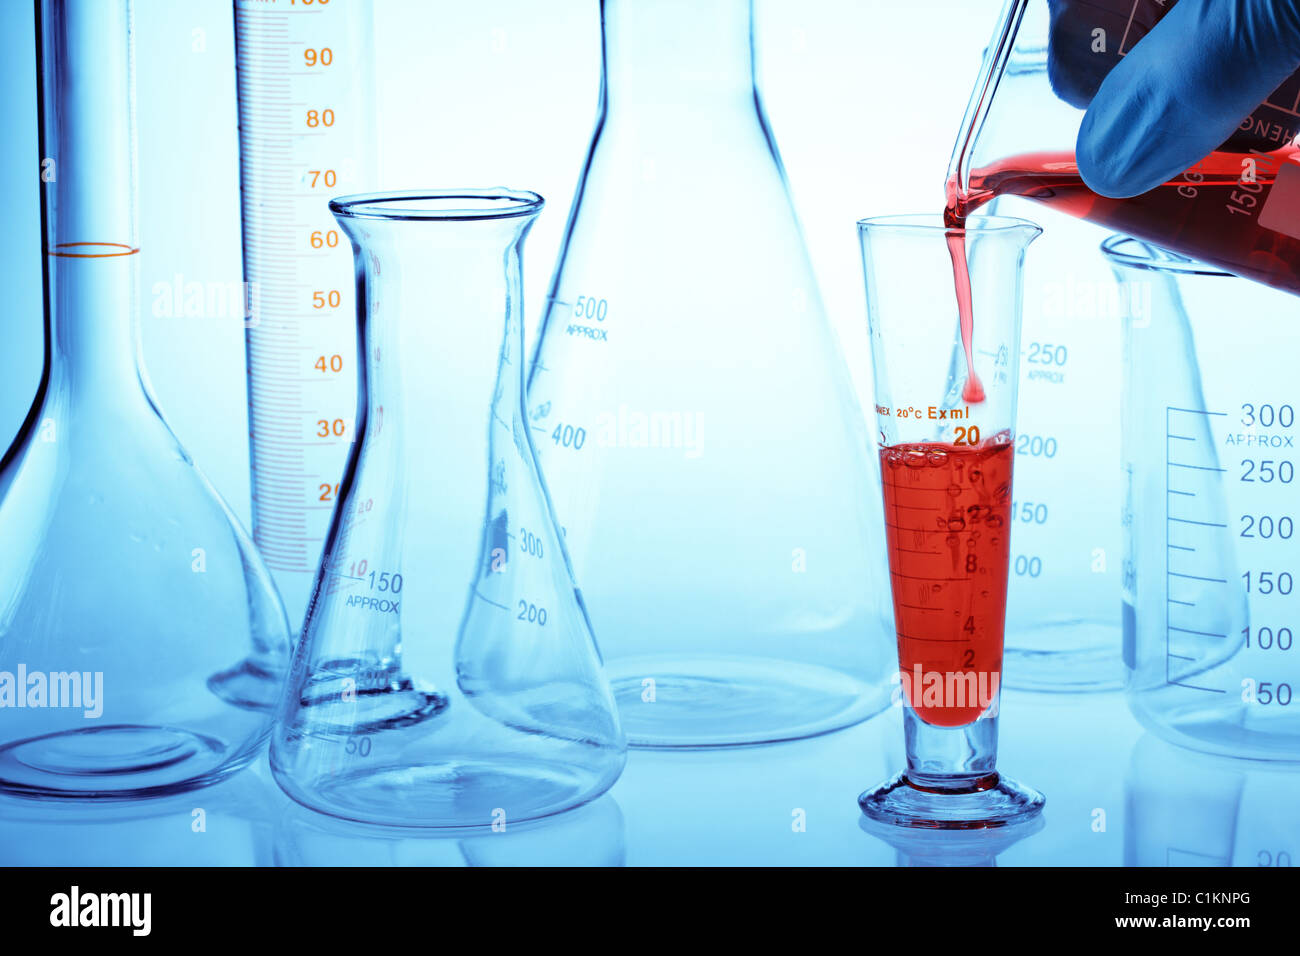 Scientist hand pouring liquid in a research lab. - Stock Image